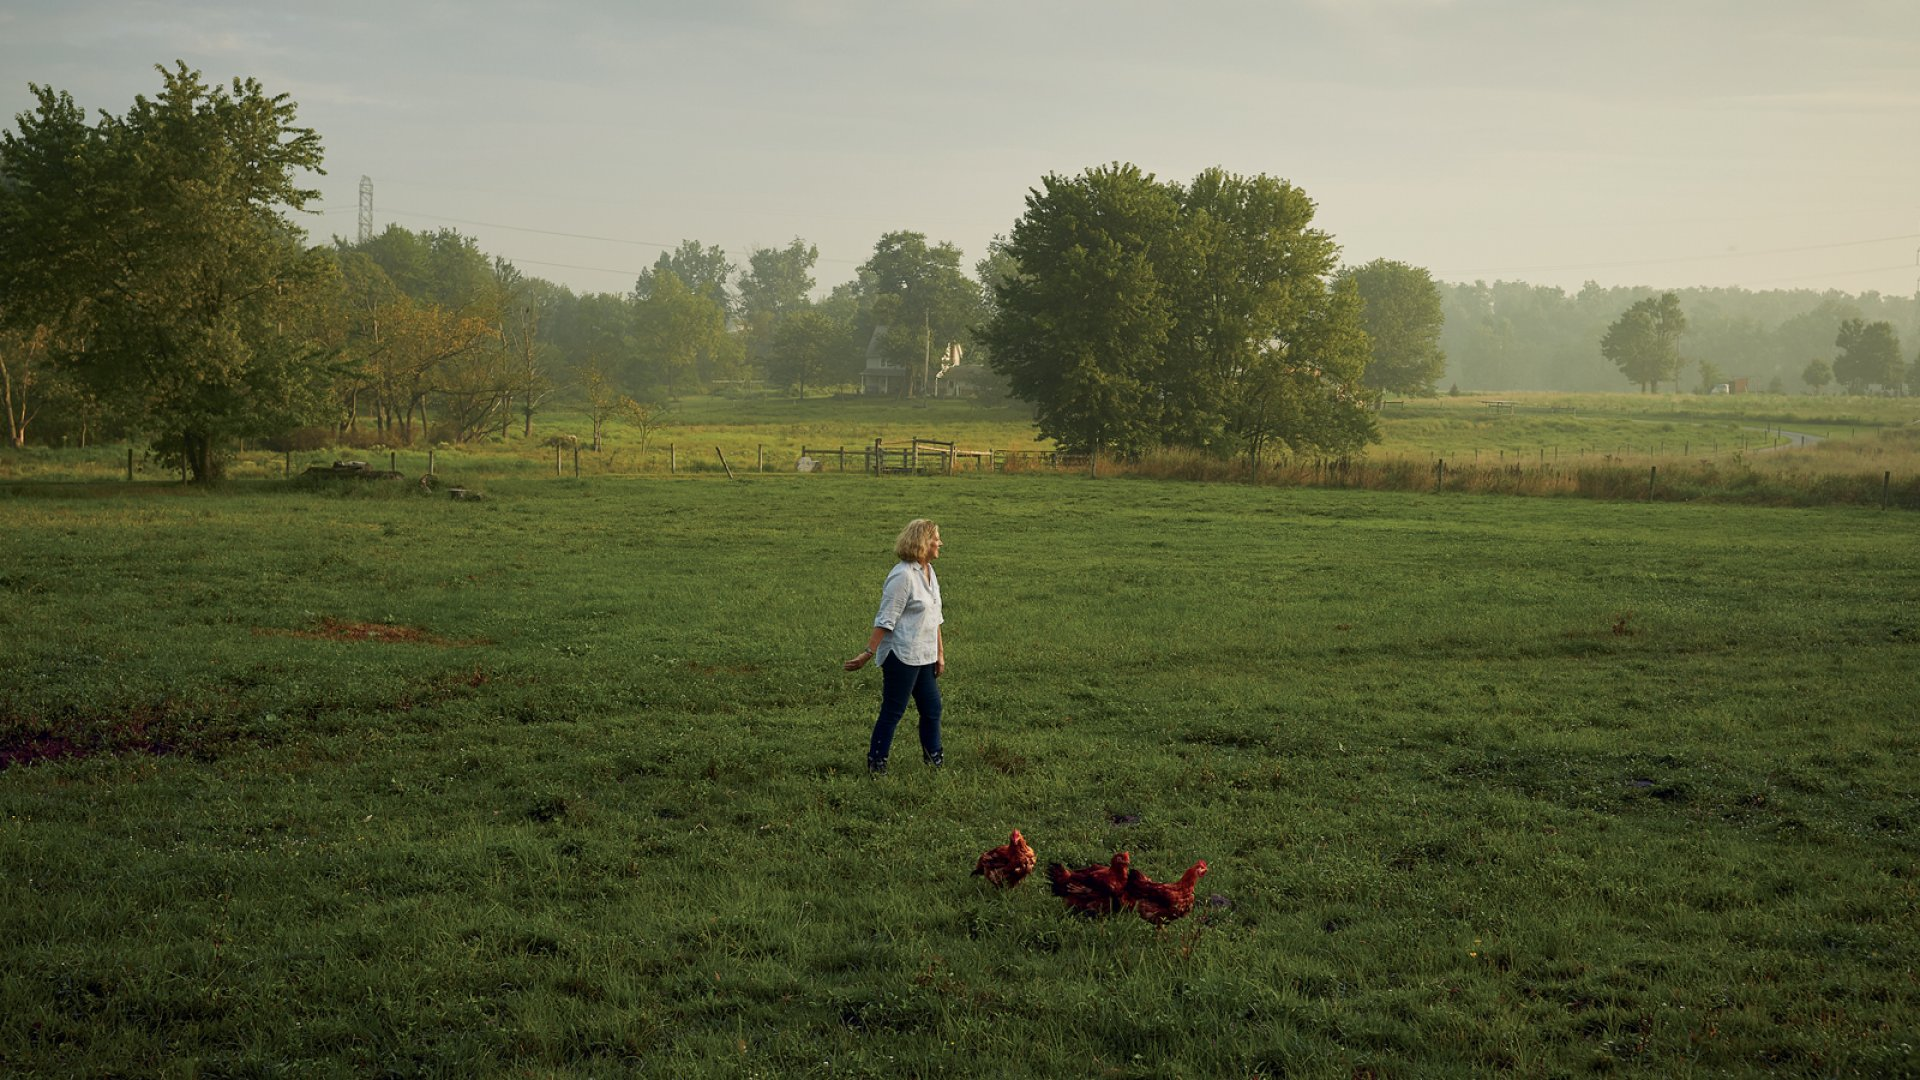 Ariane Daguin, co-founder of D'Artagnan, at an Amish farm in Myerstown, Pennsylvania, that raises poultry according to her company's exacting standards.